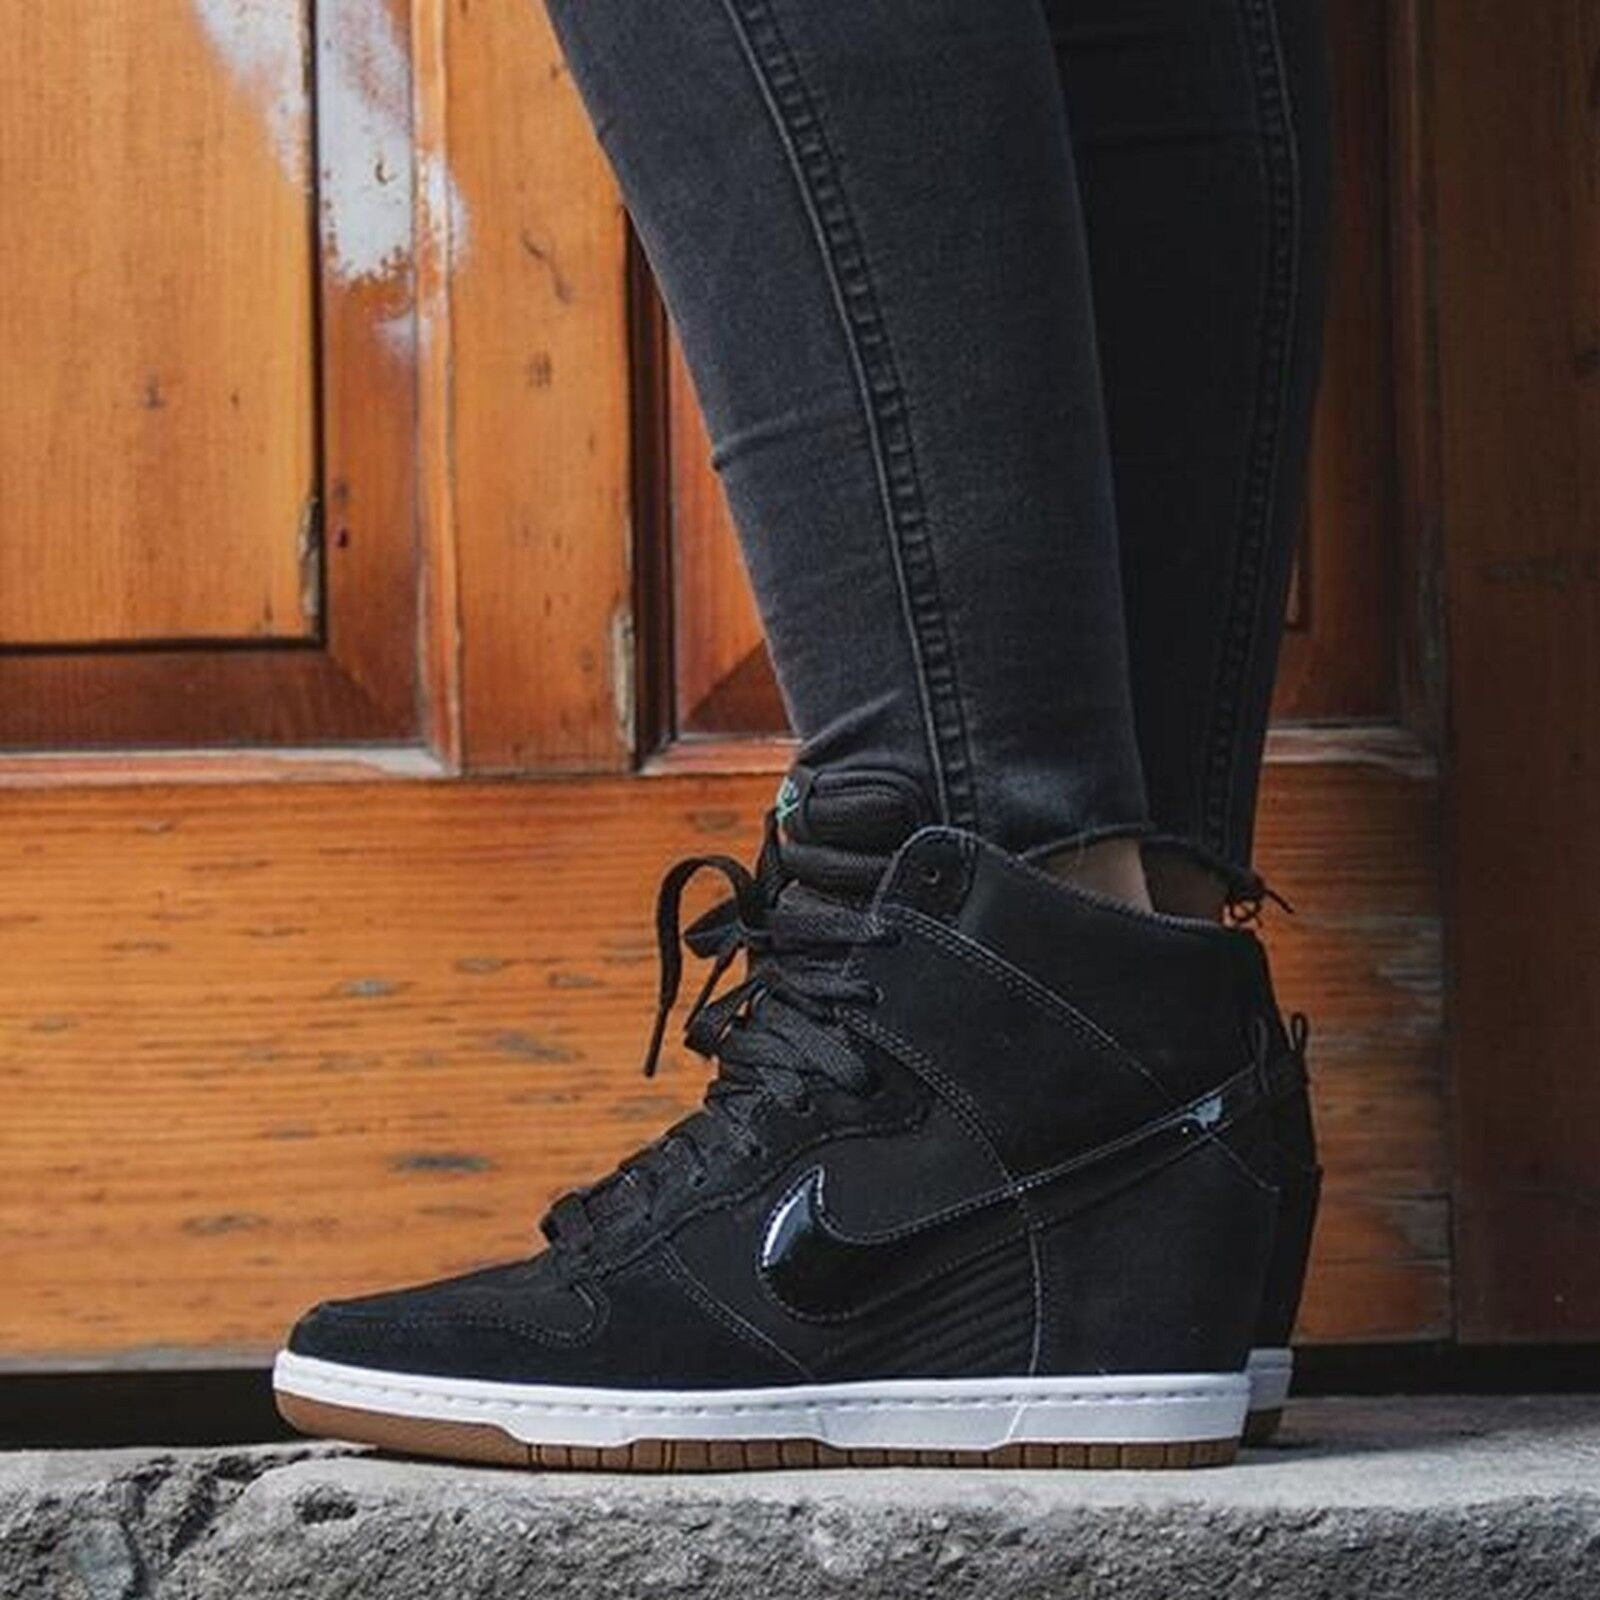 Nike Dunk Sky Hi Essential Black Gum 644877 011 Wmn Sz 6.5 Wedge